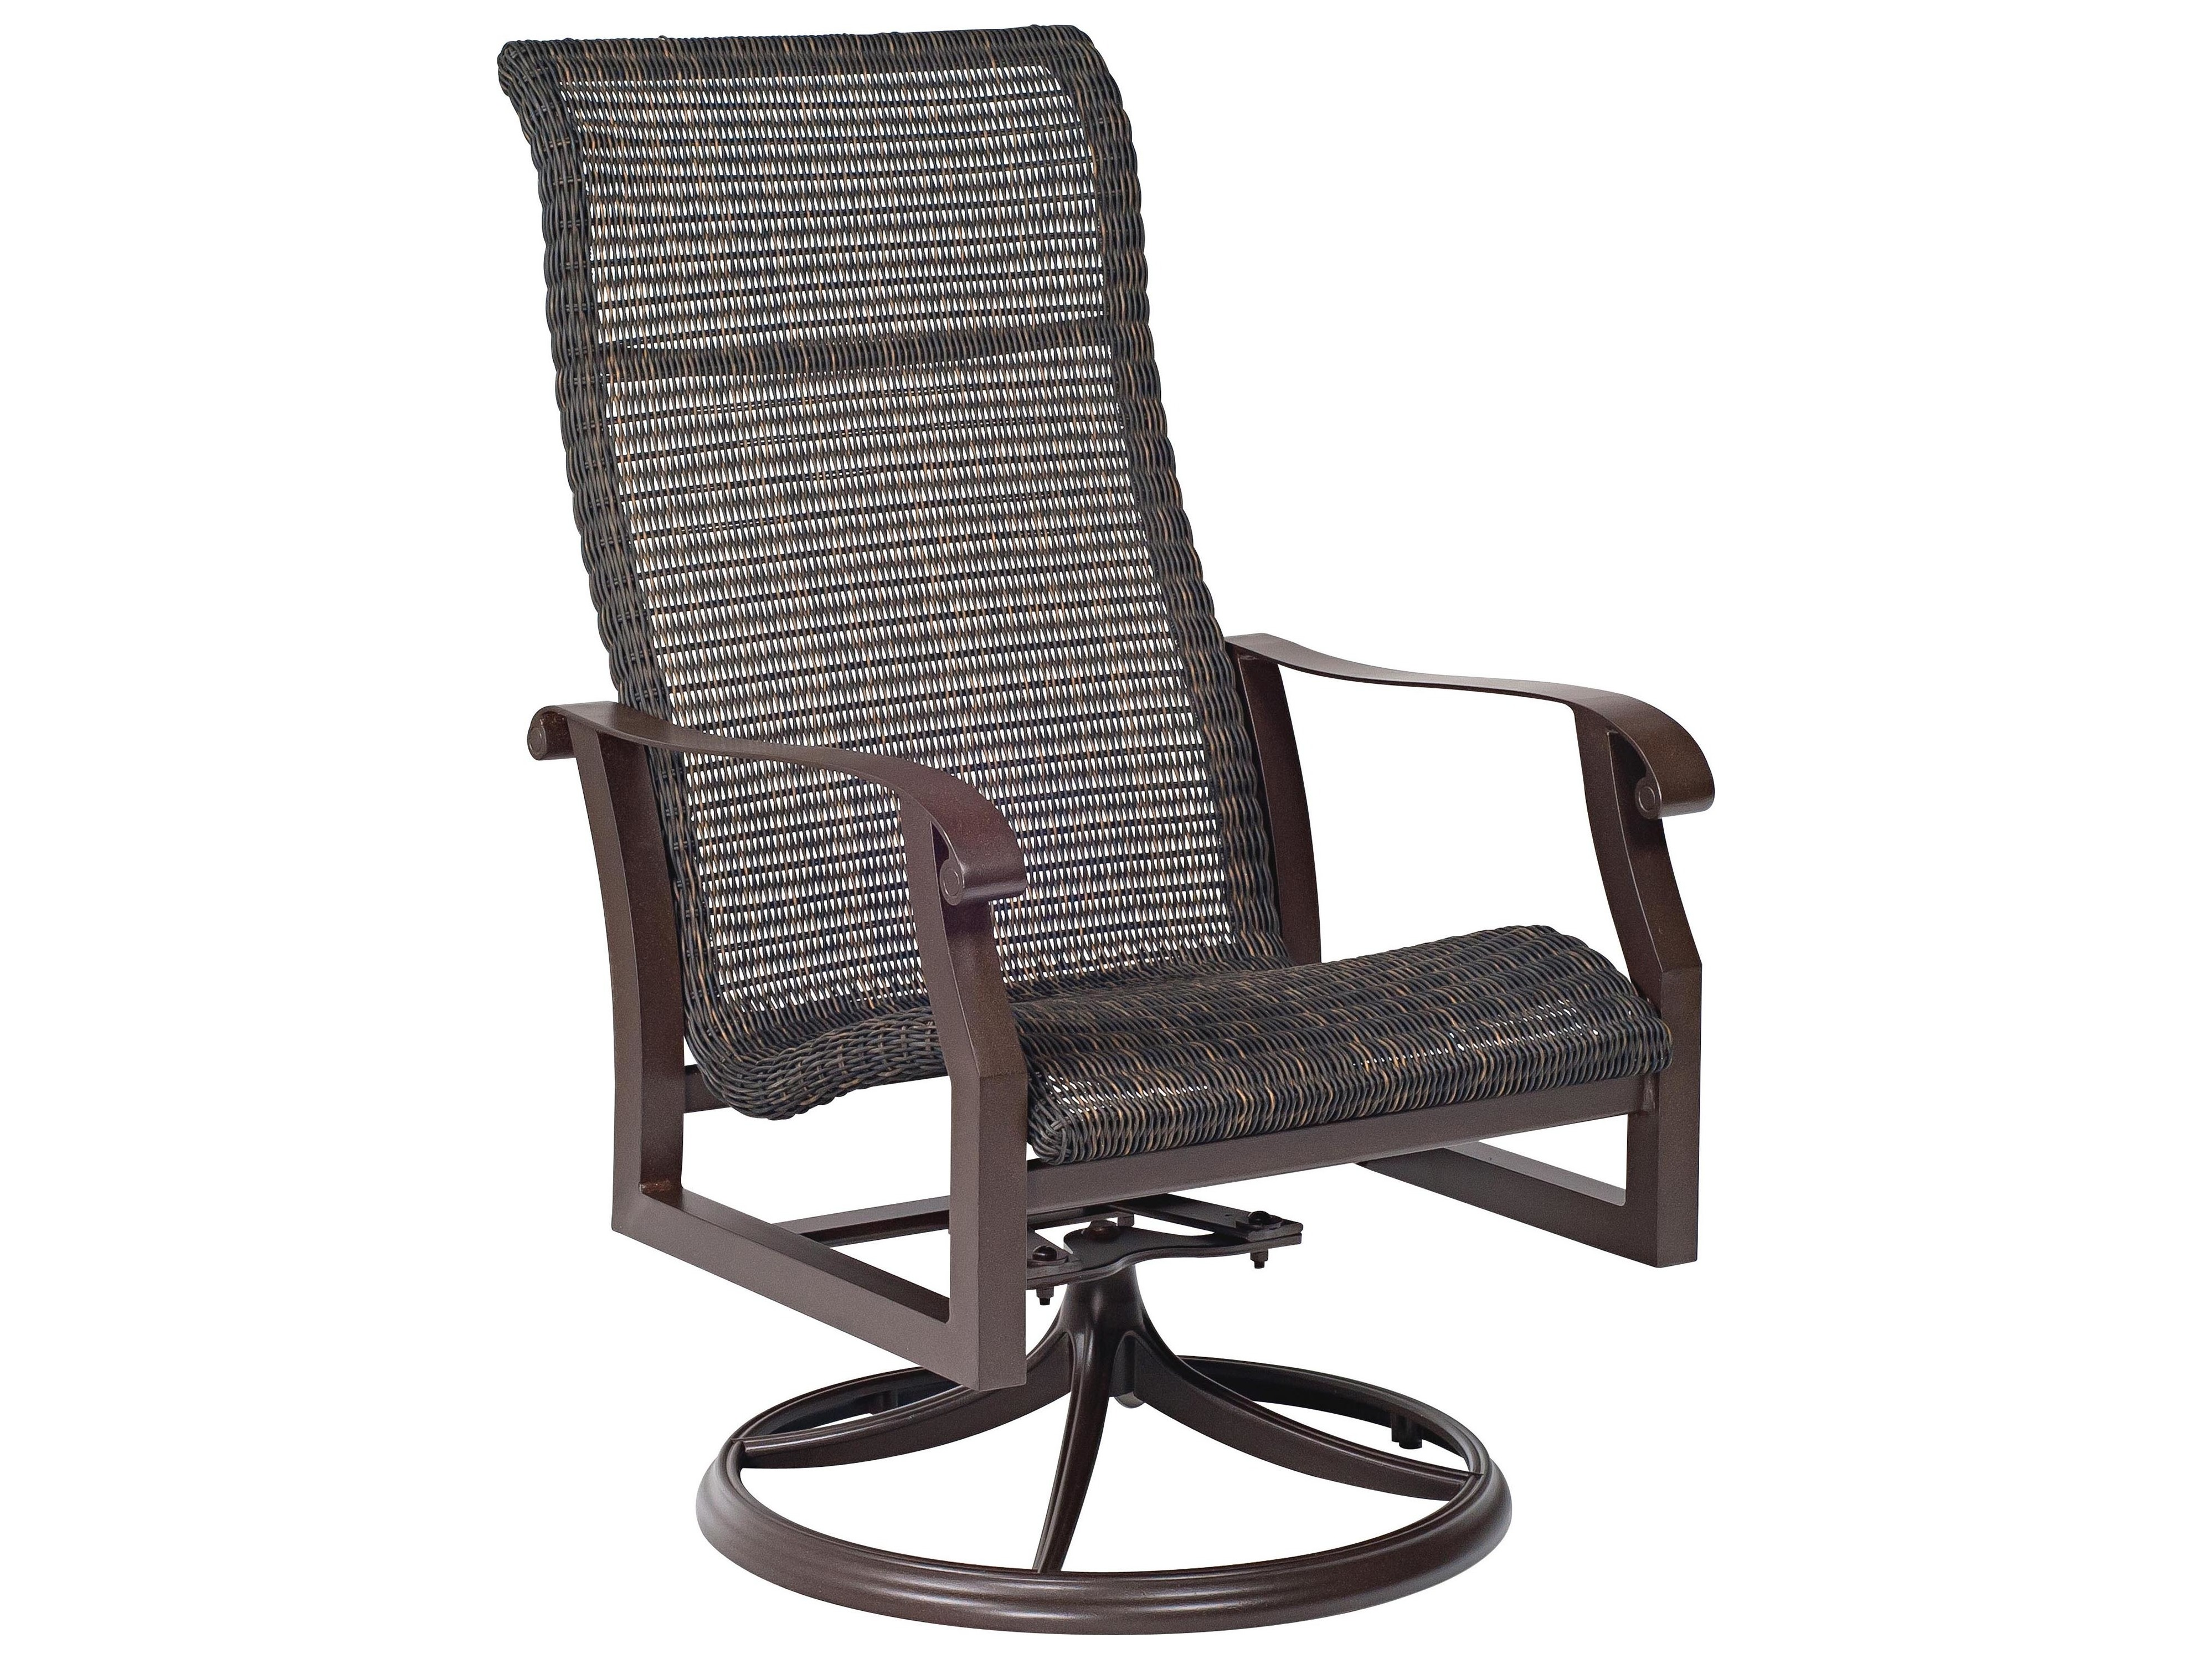 round patio chair zebra wood woodard cortland woven weave wicker high back swivel